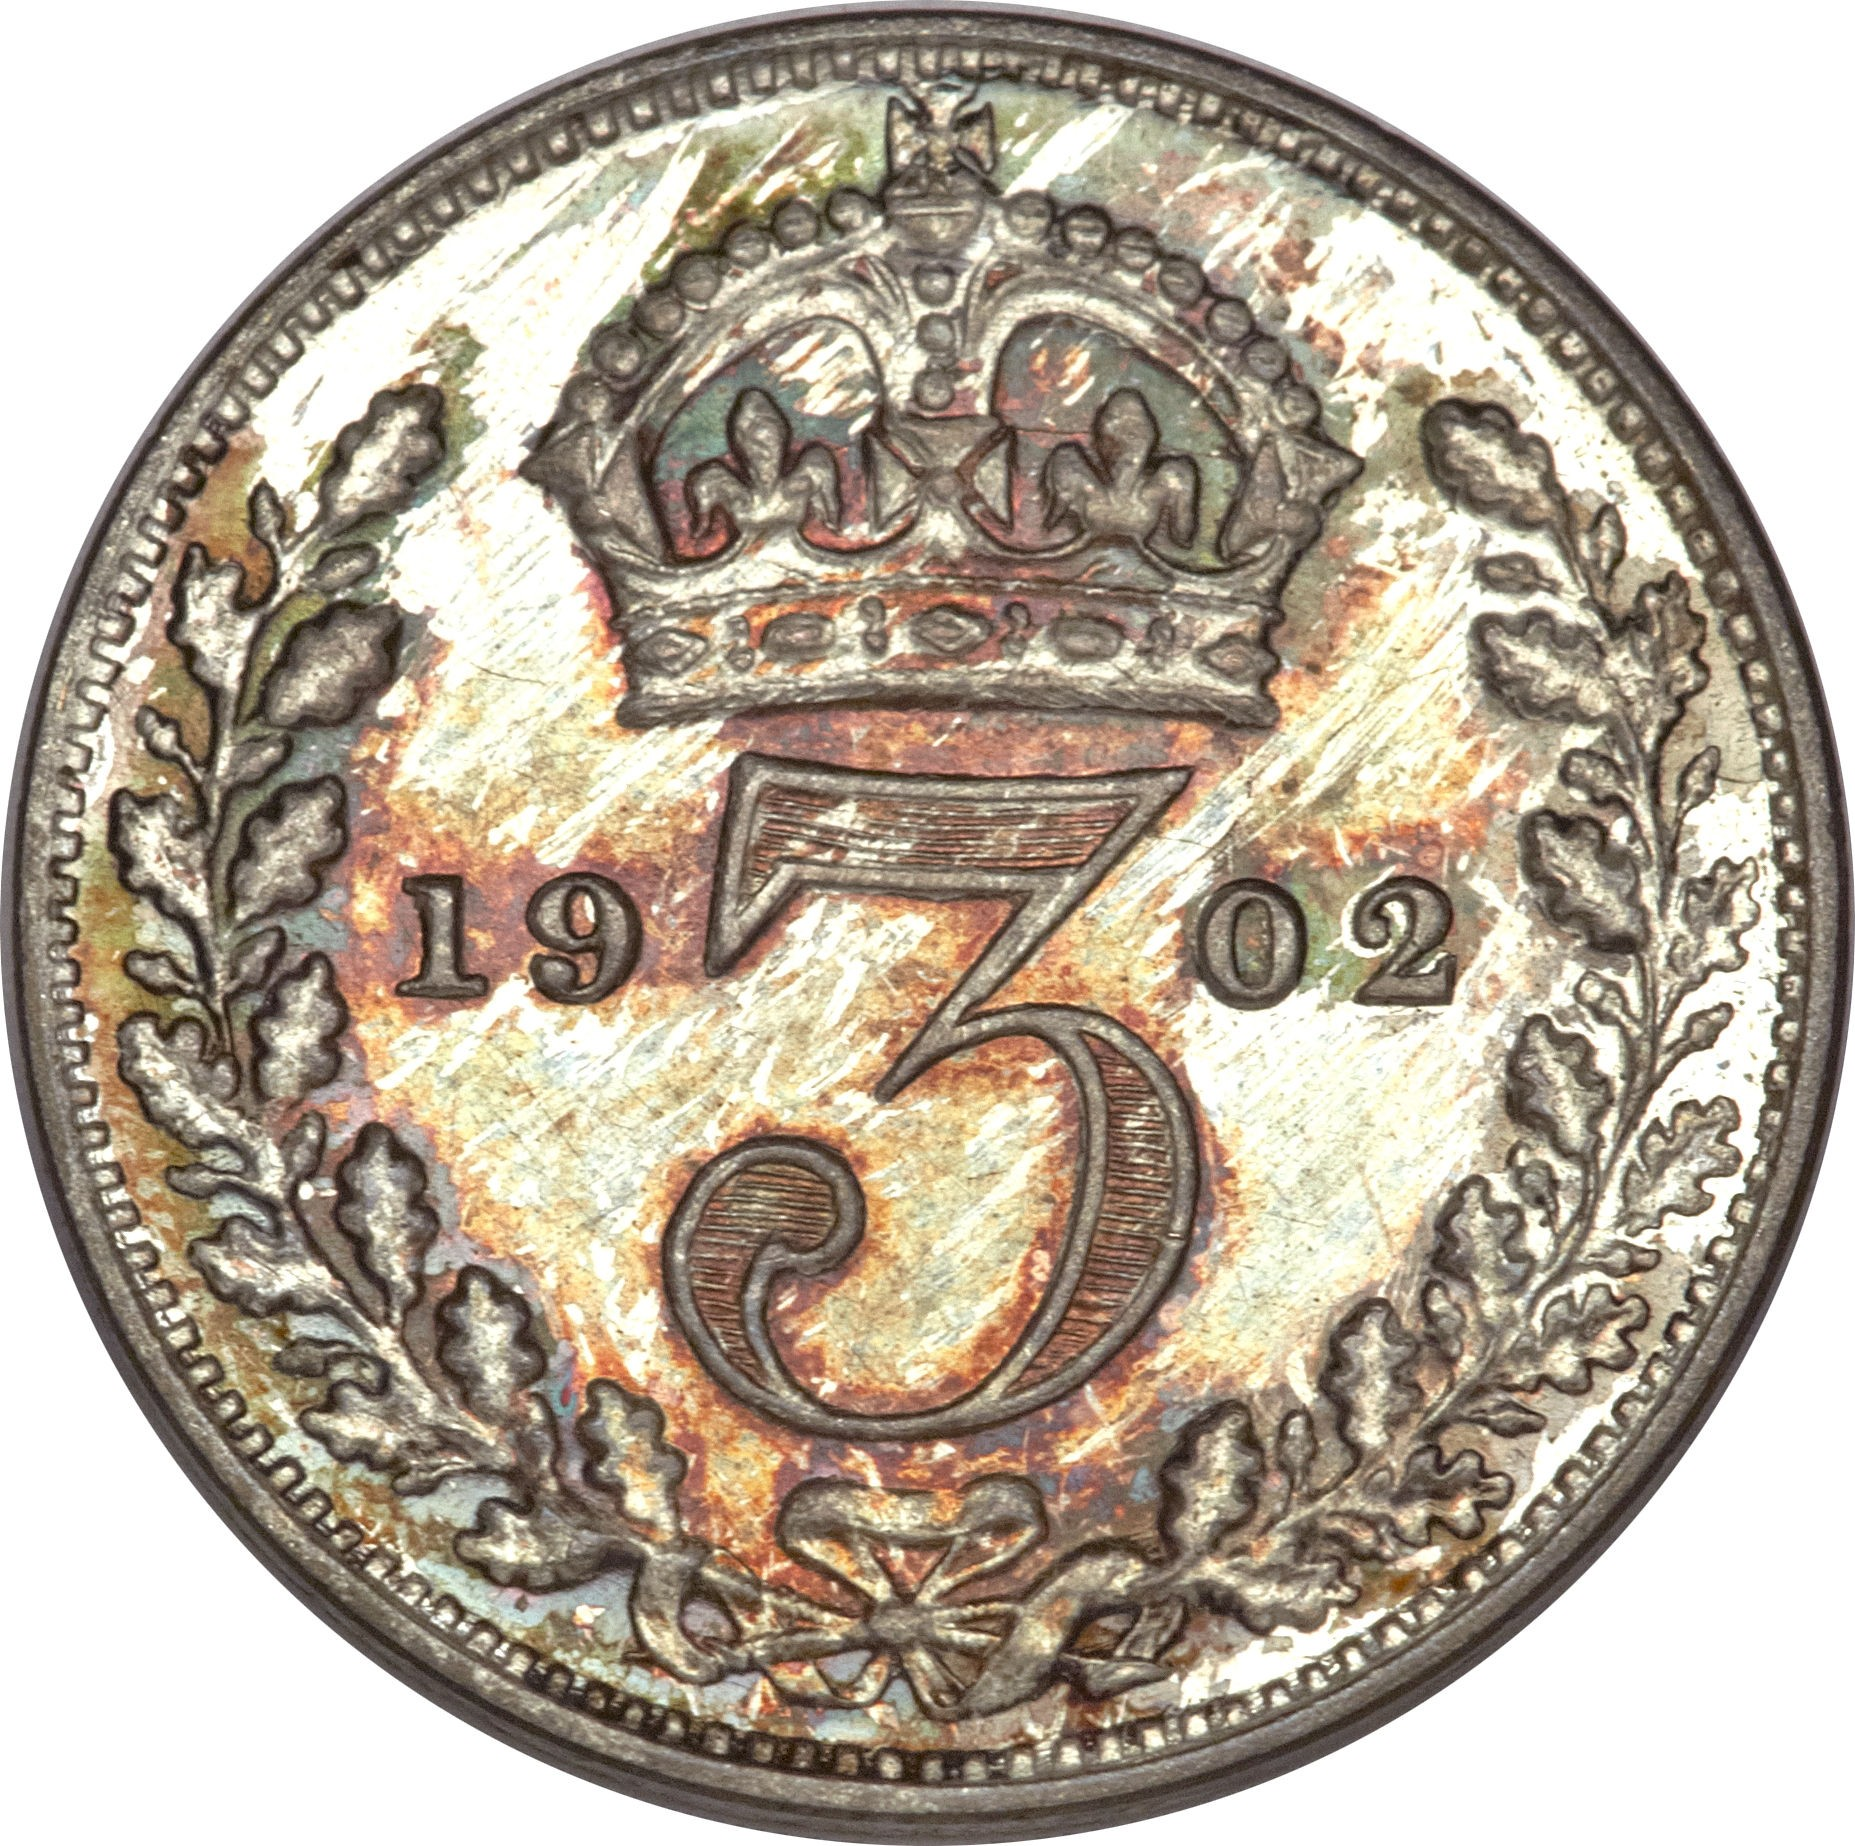 British 3 Pence (1902-1910 Edward VII)